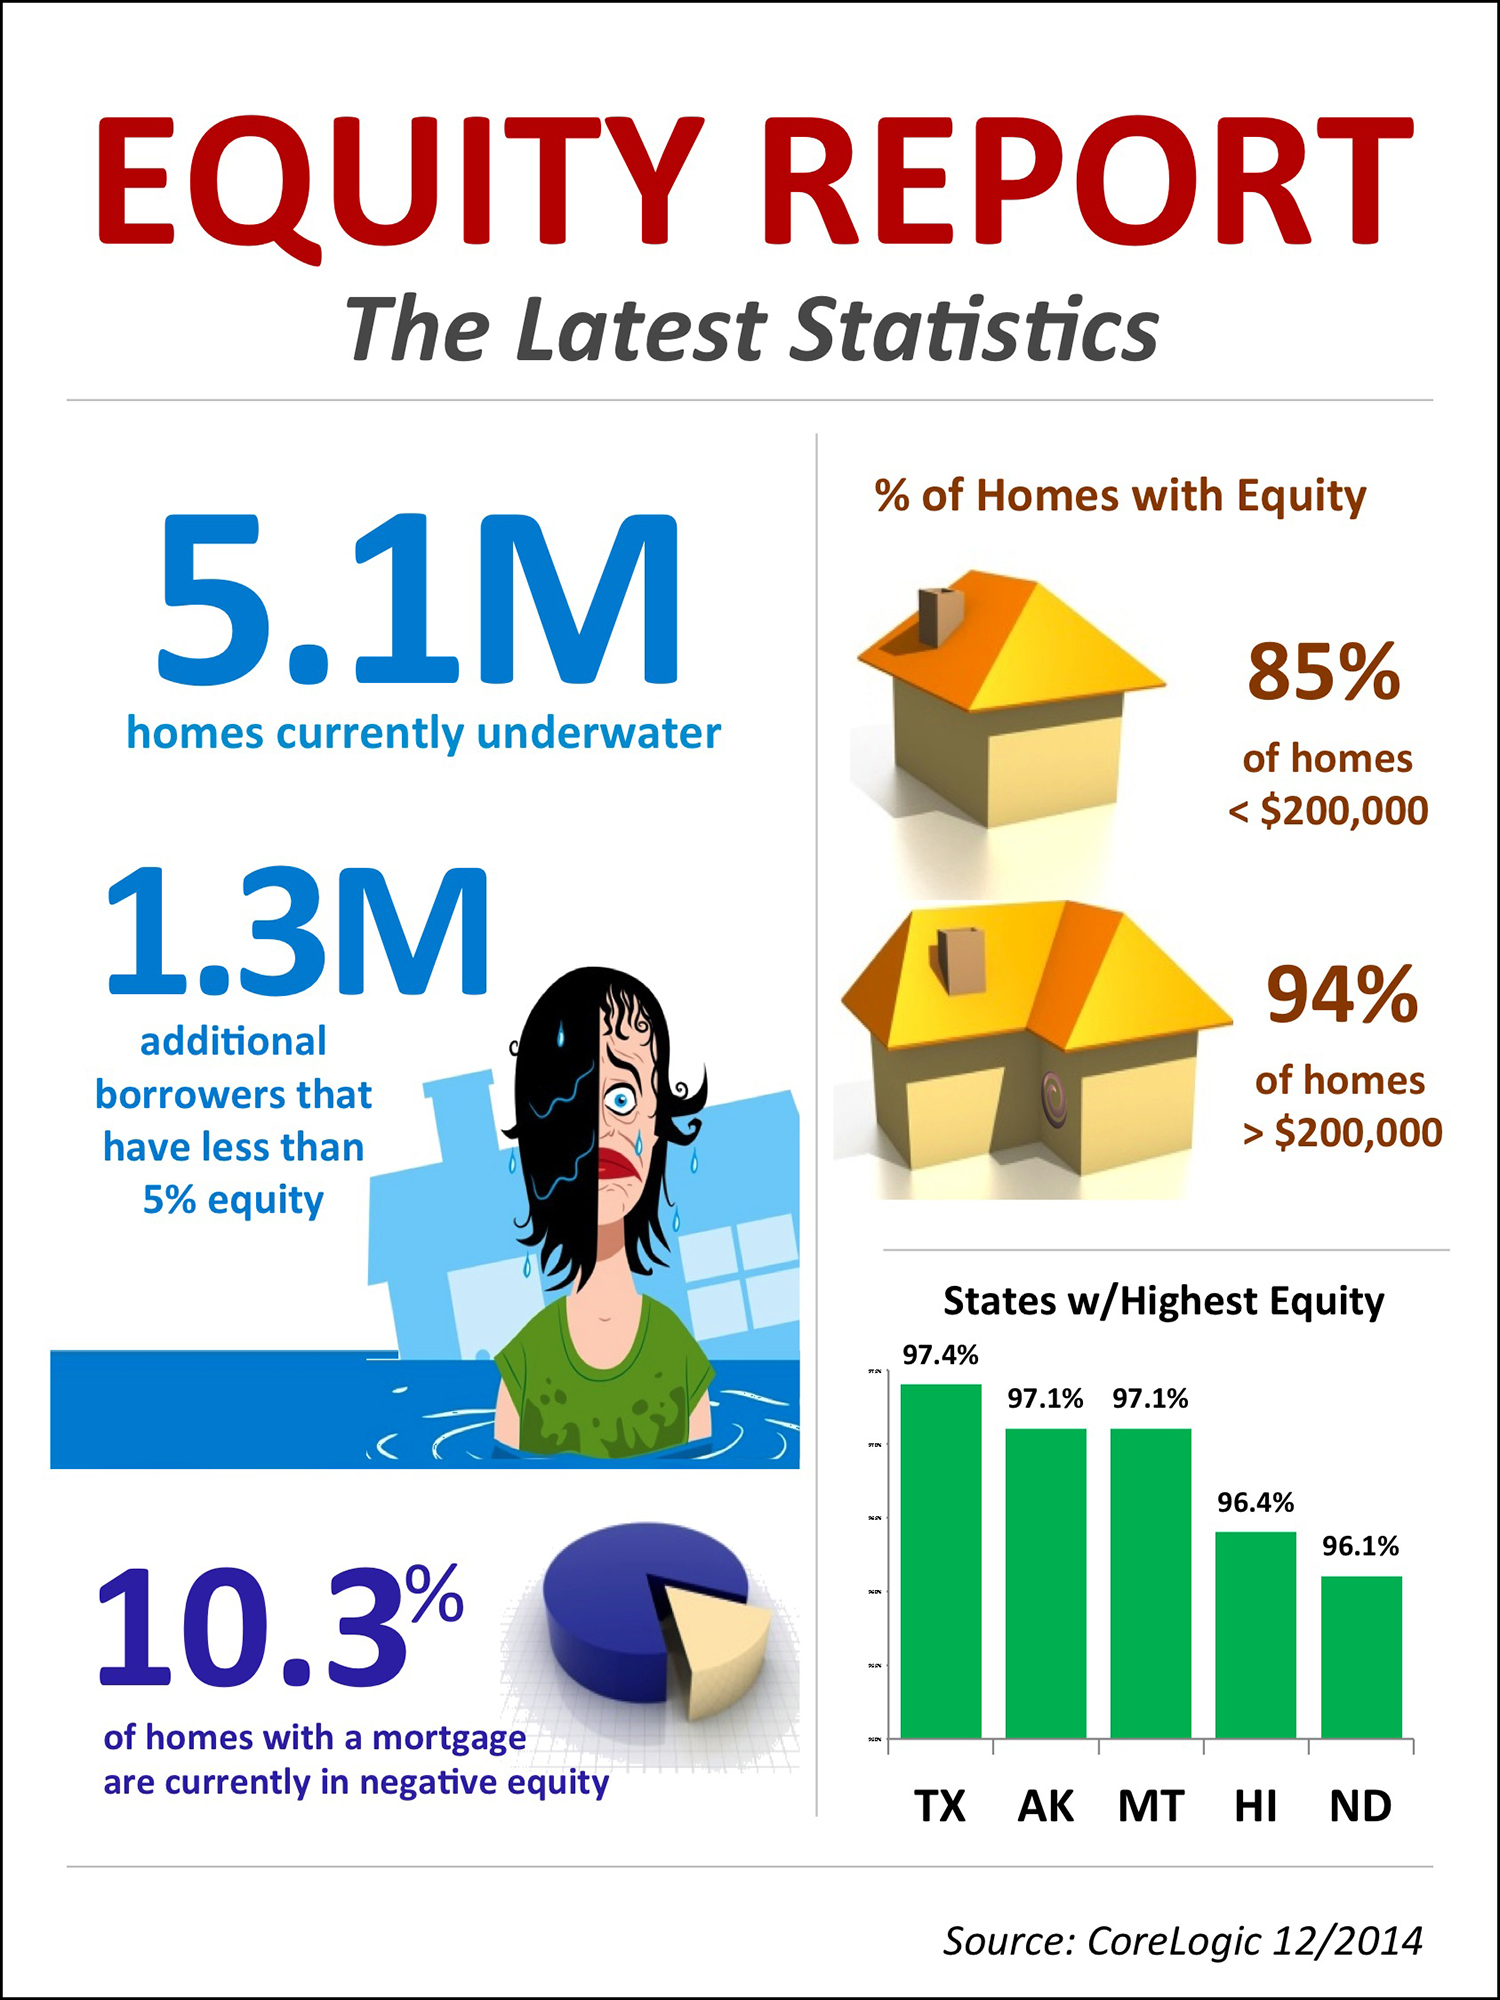 Equity Report Infographic | Simplifying The Market